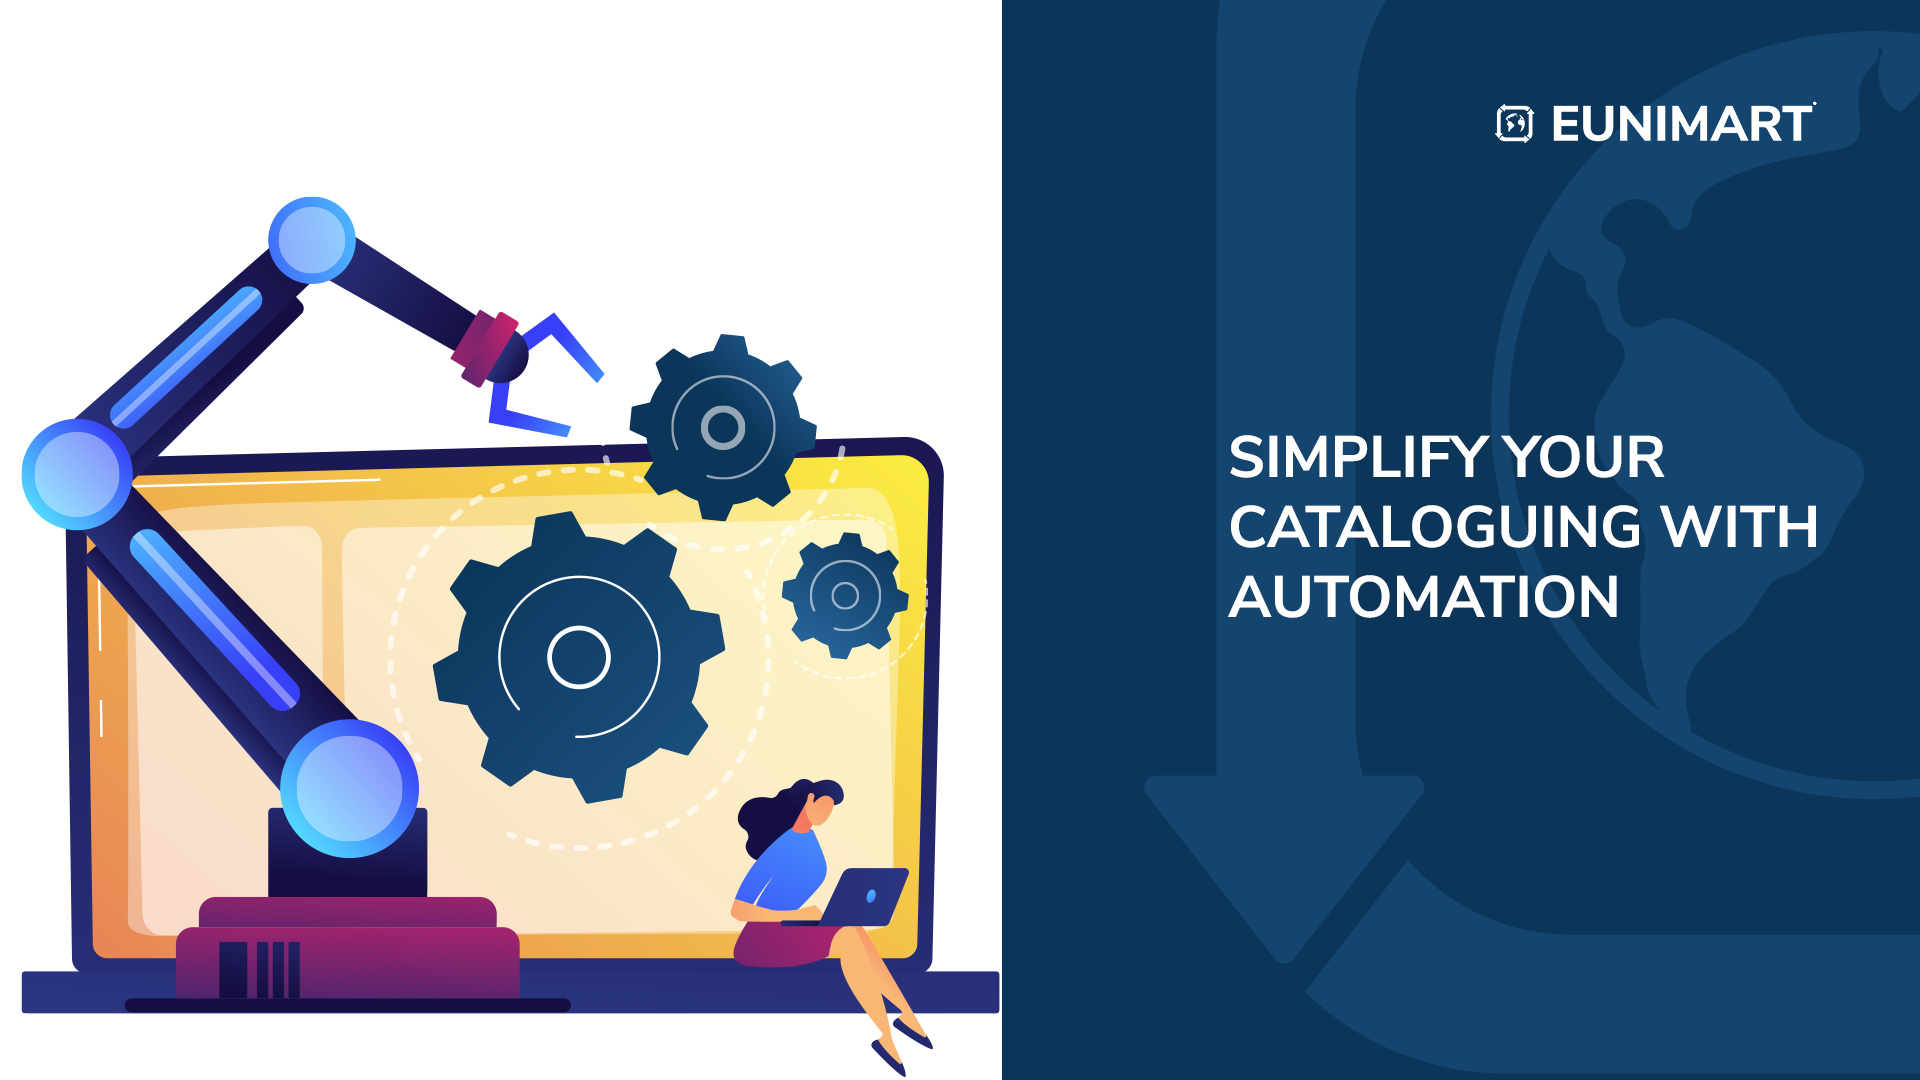 SIMPLIFY YOUR CATALOGUING WITH AUTOMATION